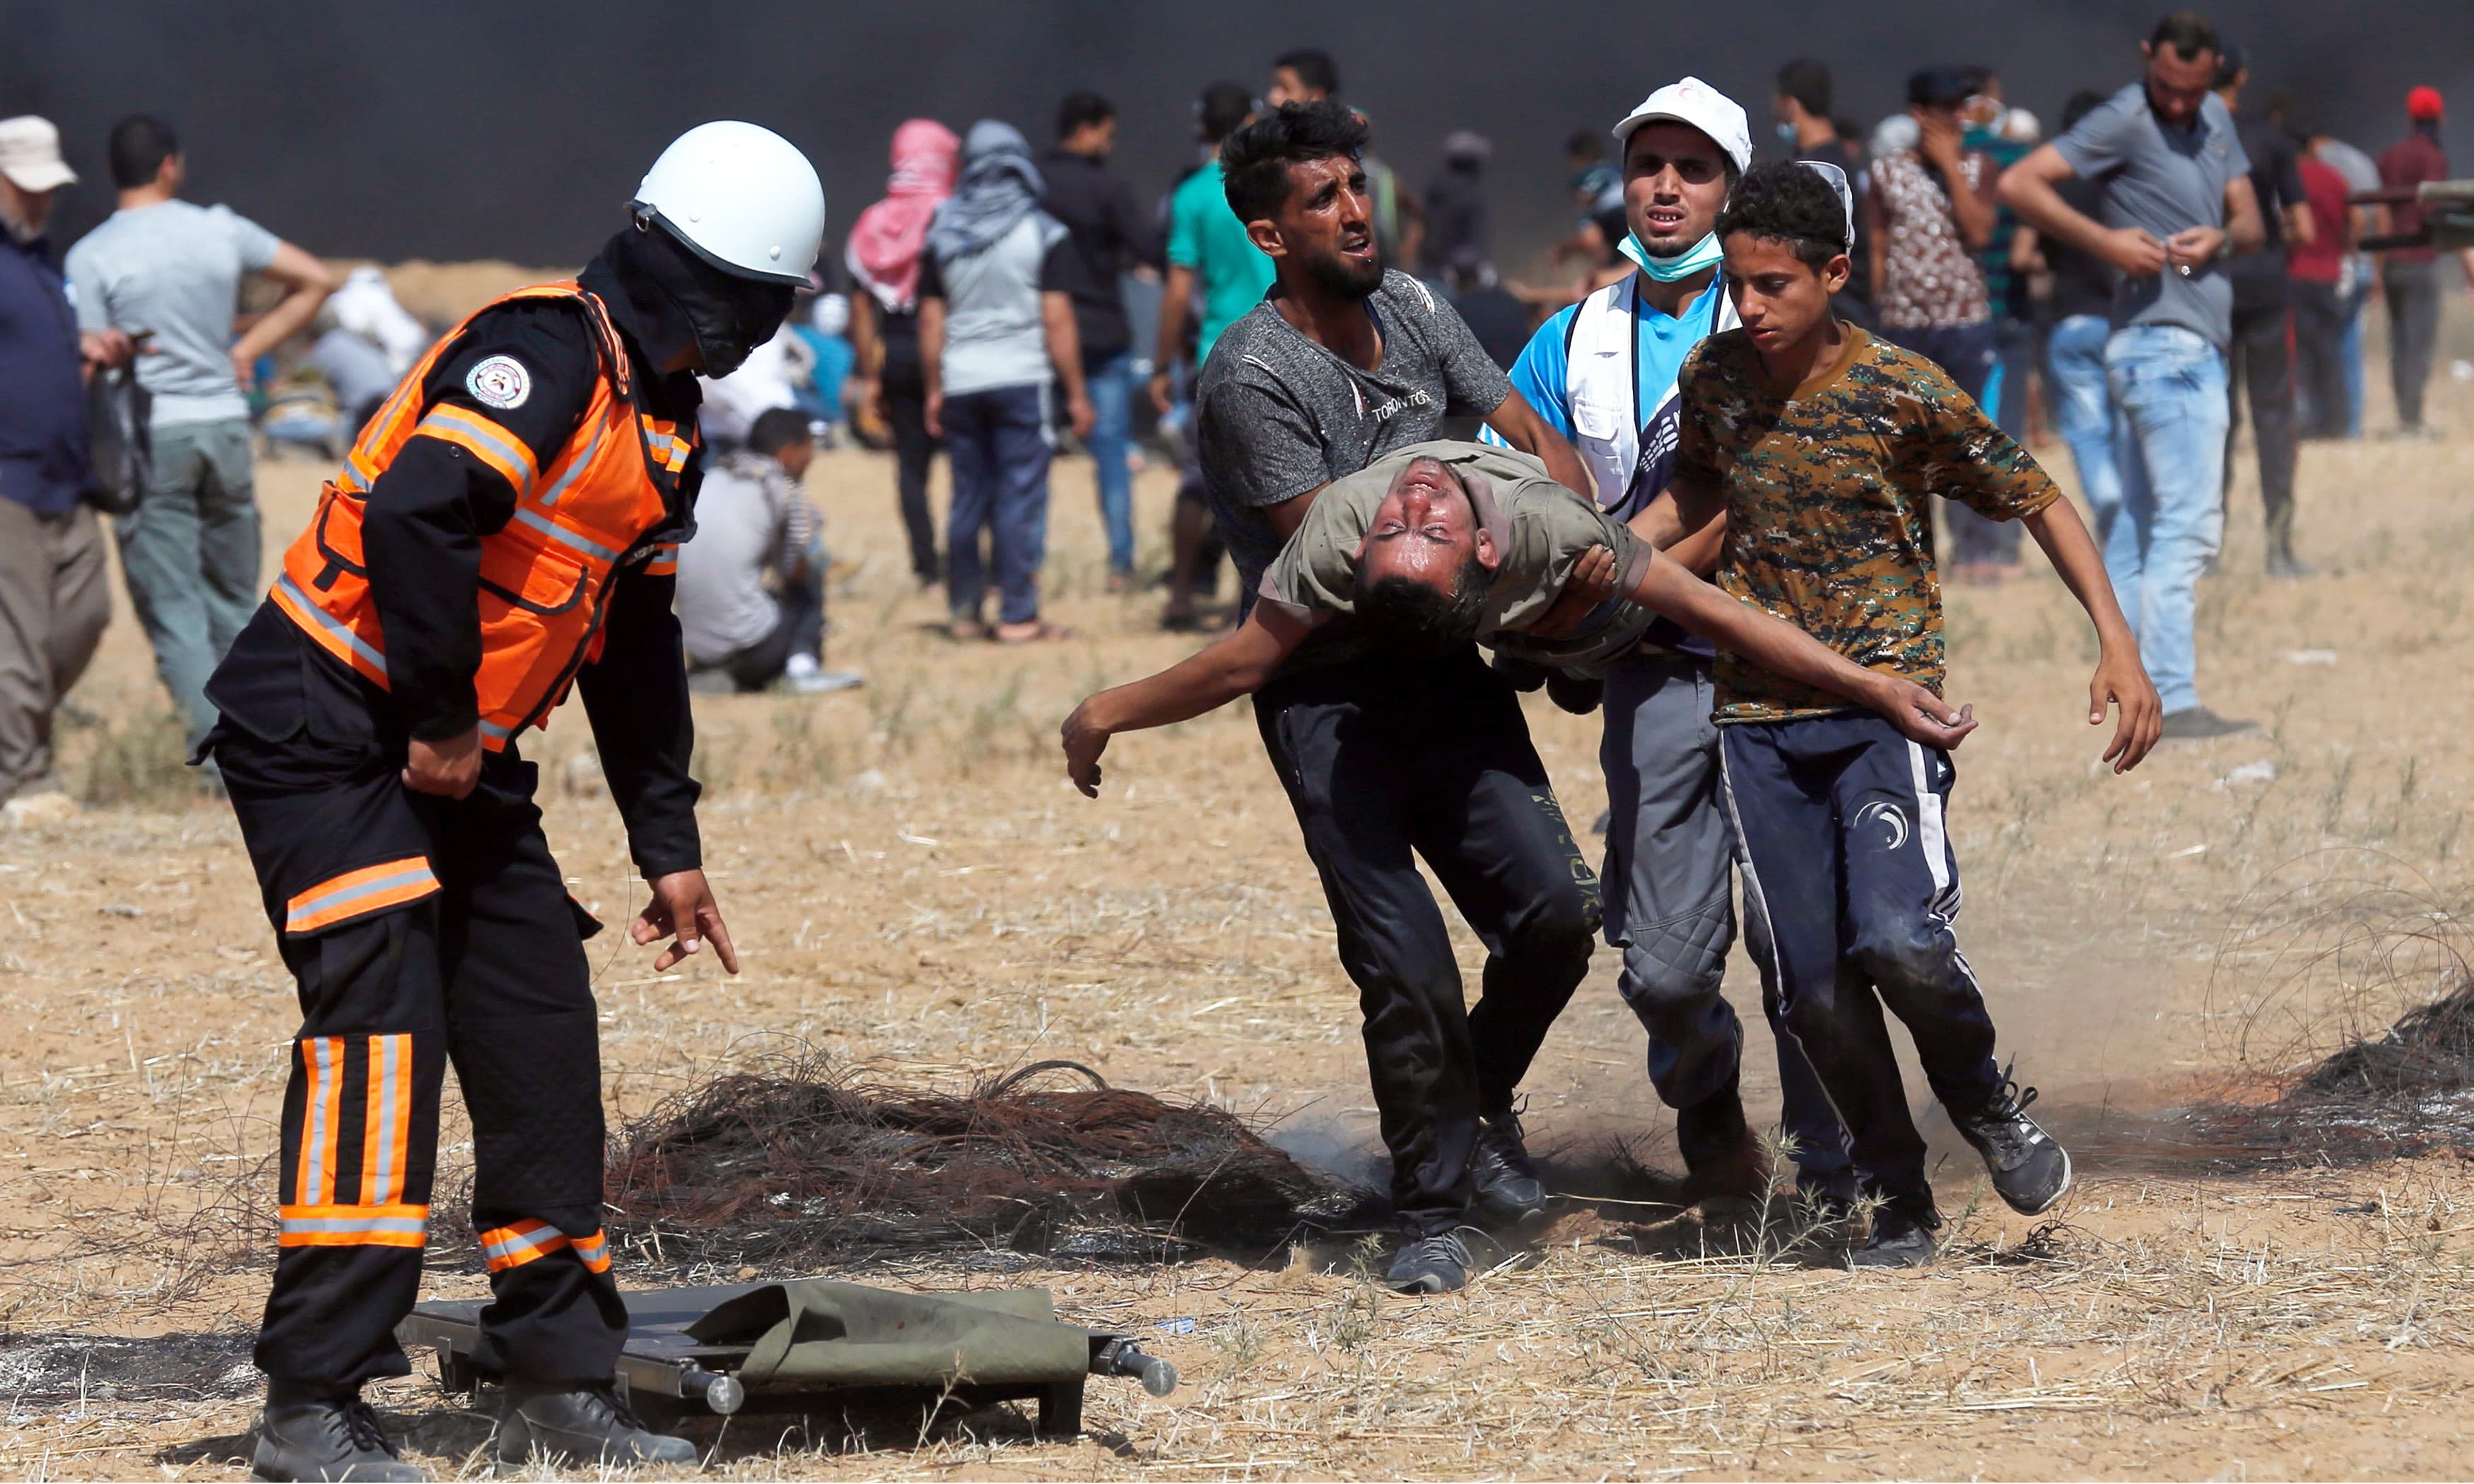 Palestinian protesters and paramedics carry an injured demonstrator away from the scene of clashes with Israeli forces. —AFP